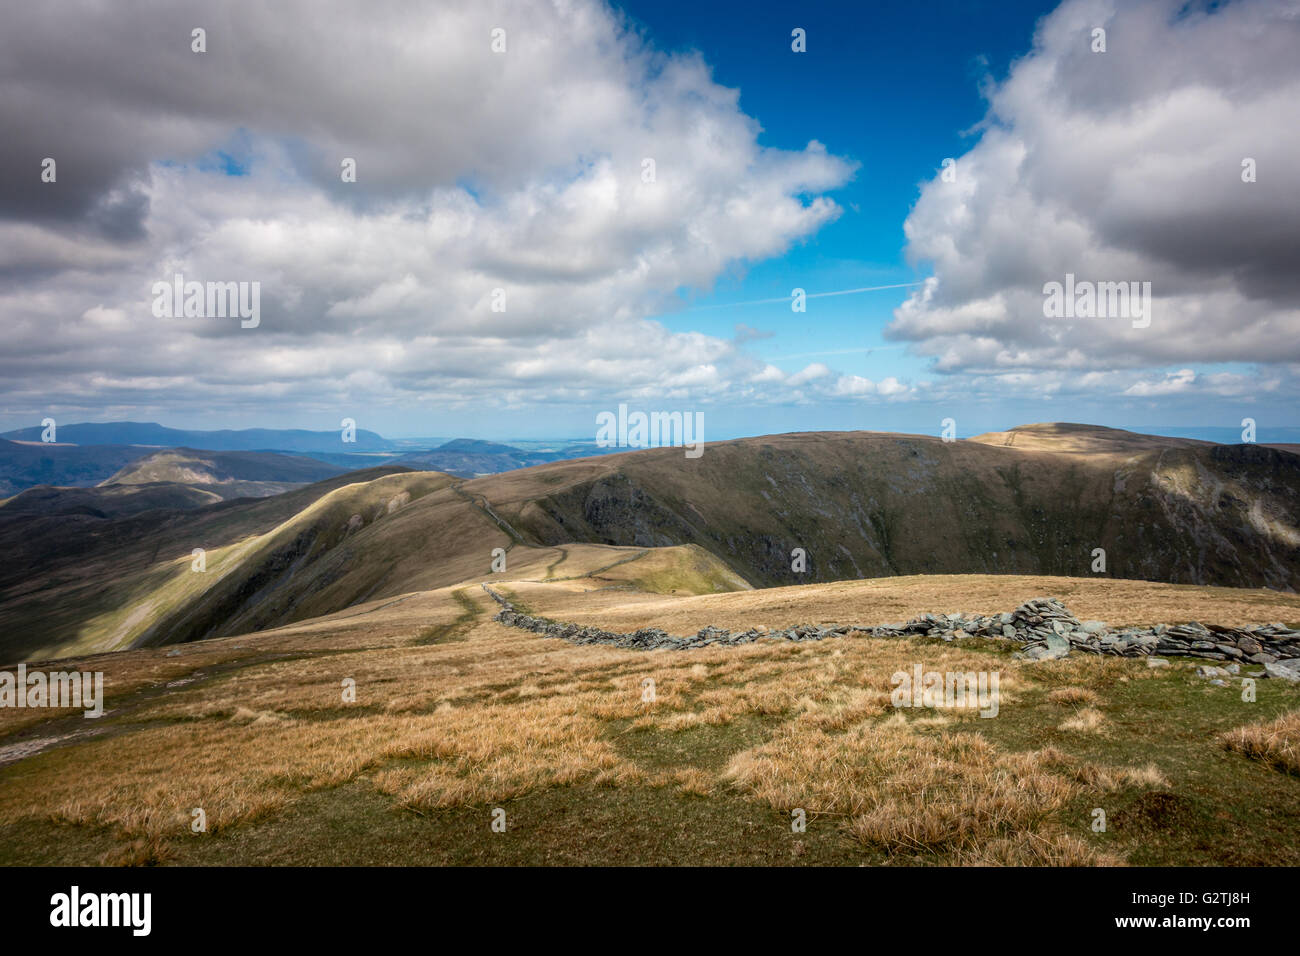 Views from High Street looking north down path towards Kidsty Pike, Lake District, UK - Stock Image